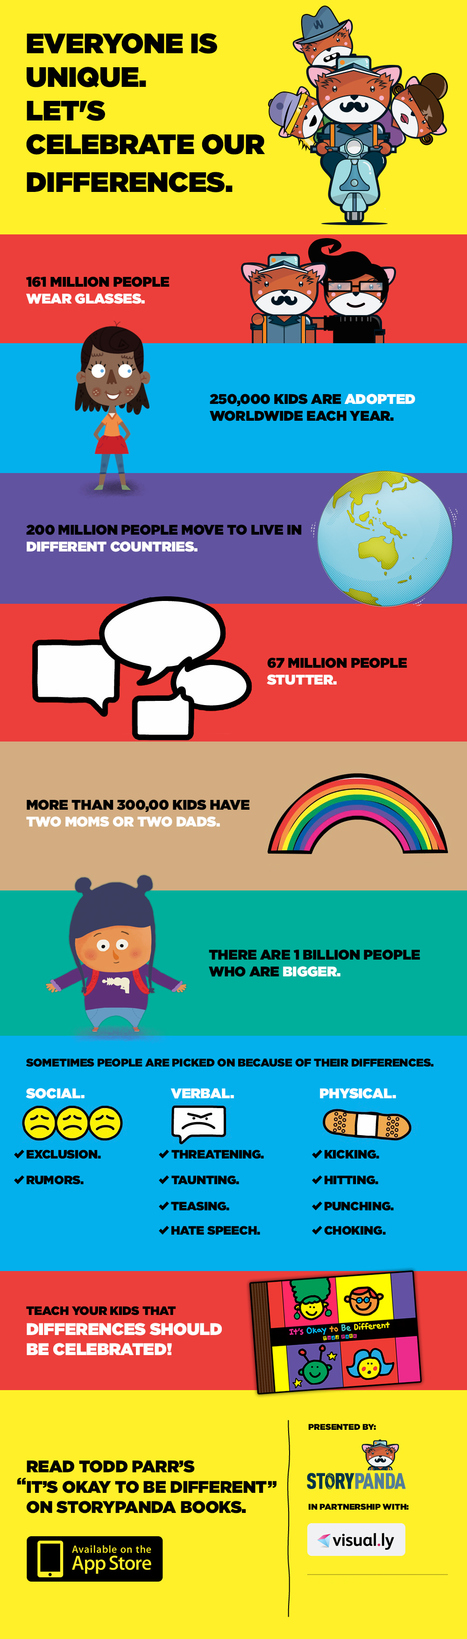 A Must-See Anti-Bullying Poster Perfect For Classrooms | Education Matters - (tech and non-tech) | Scoop.it